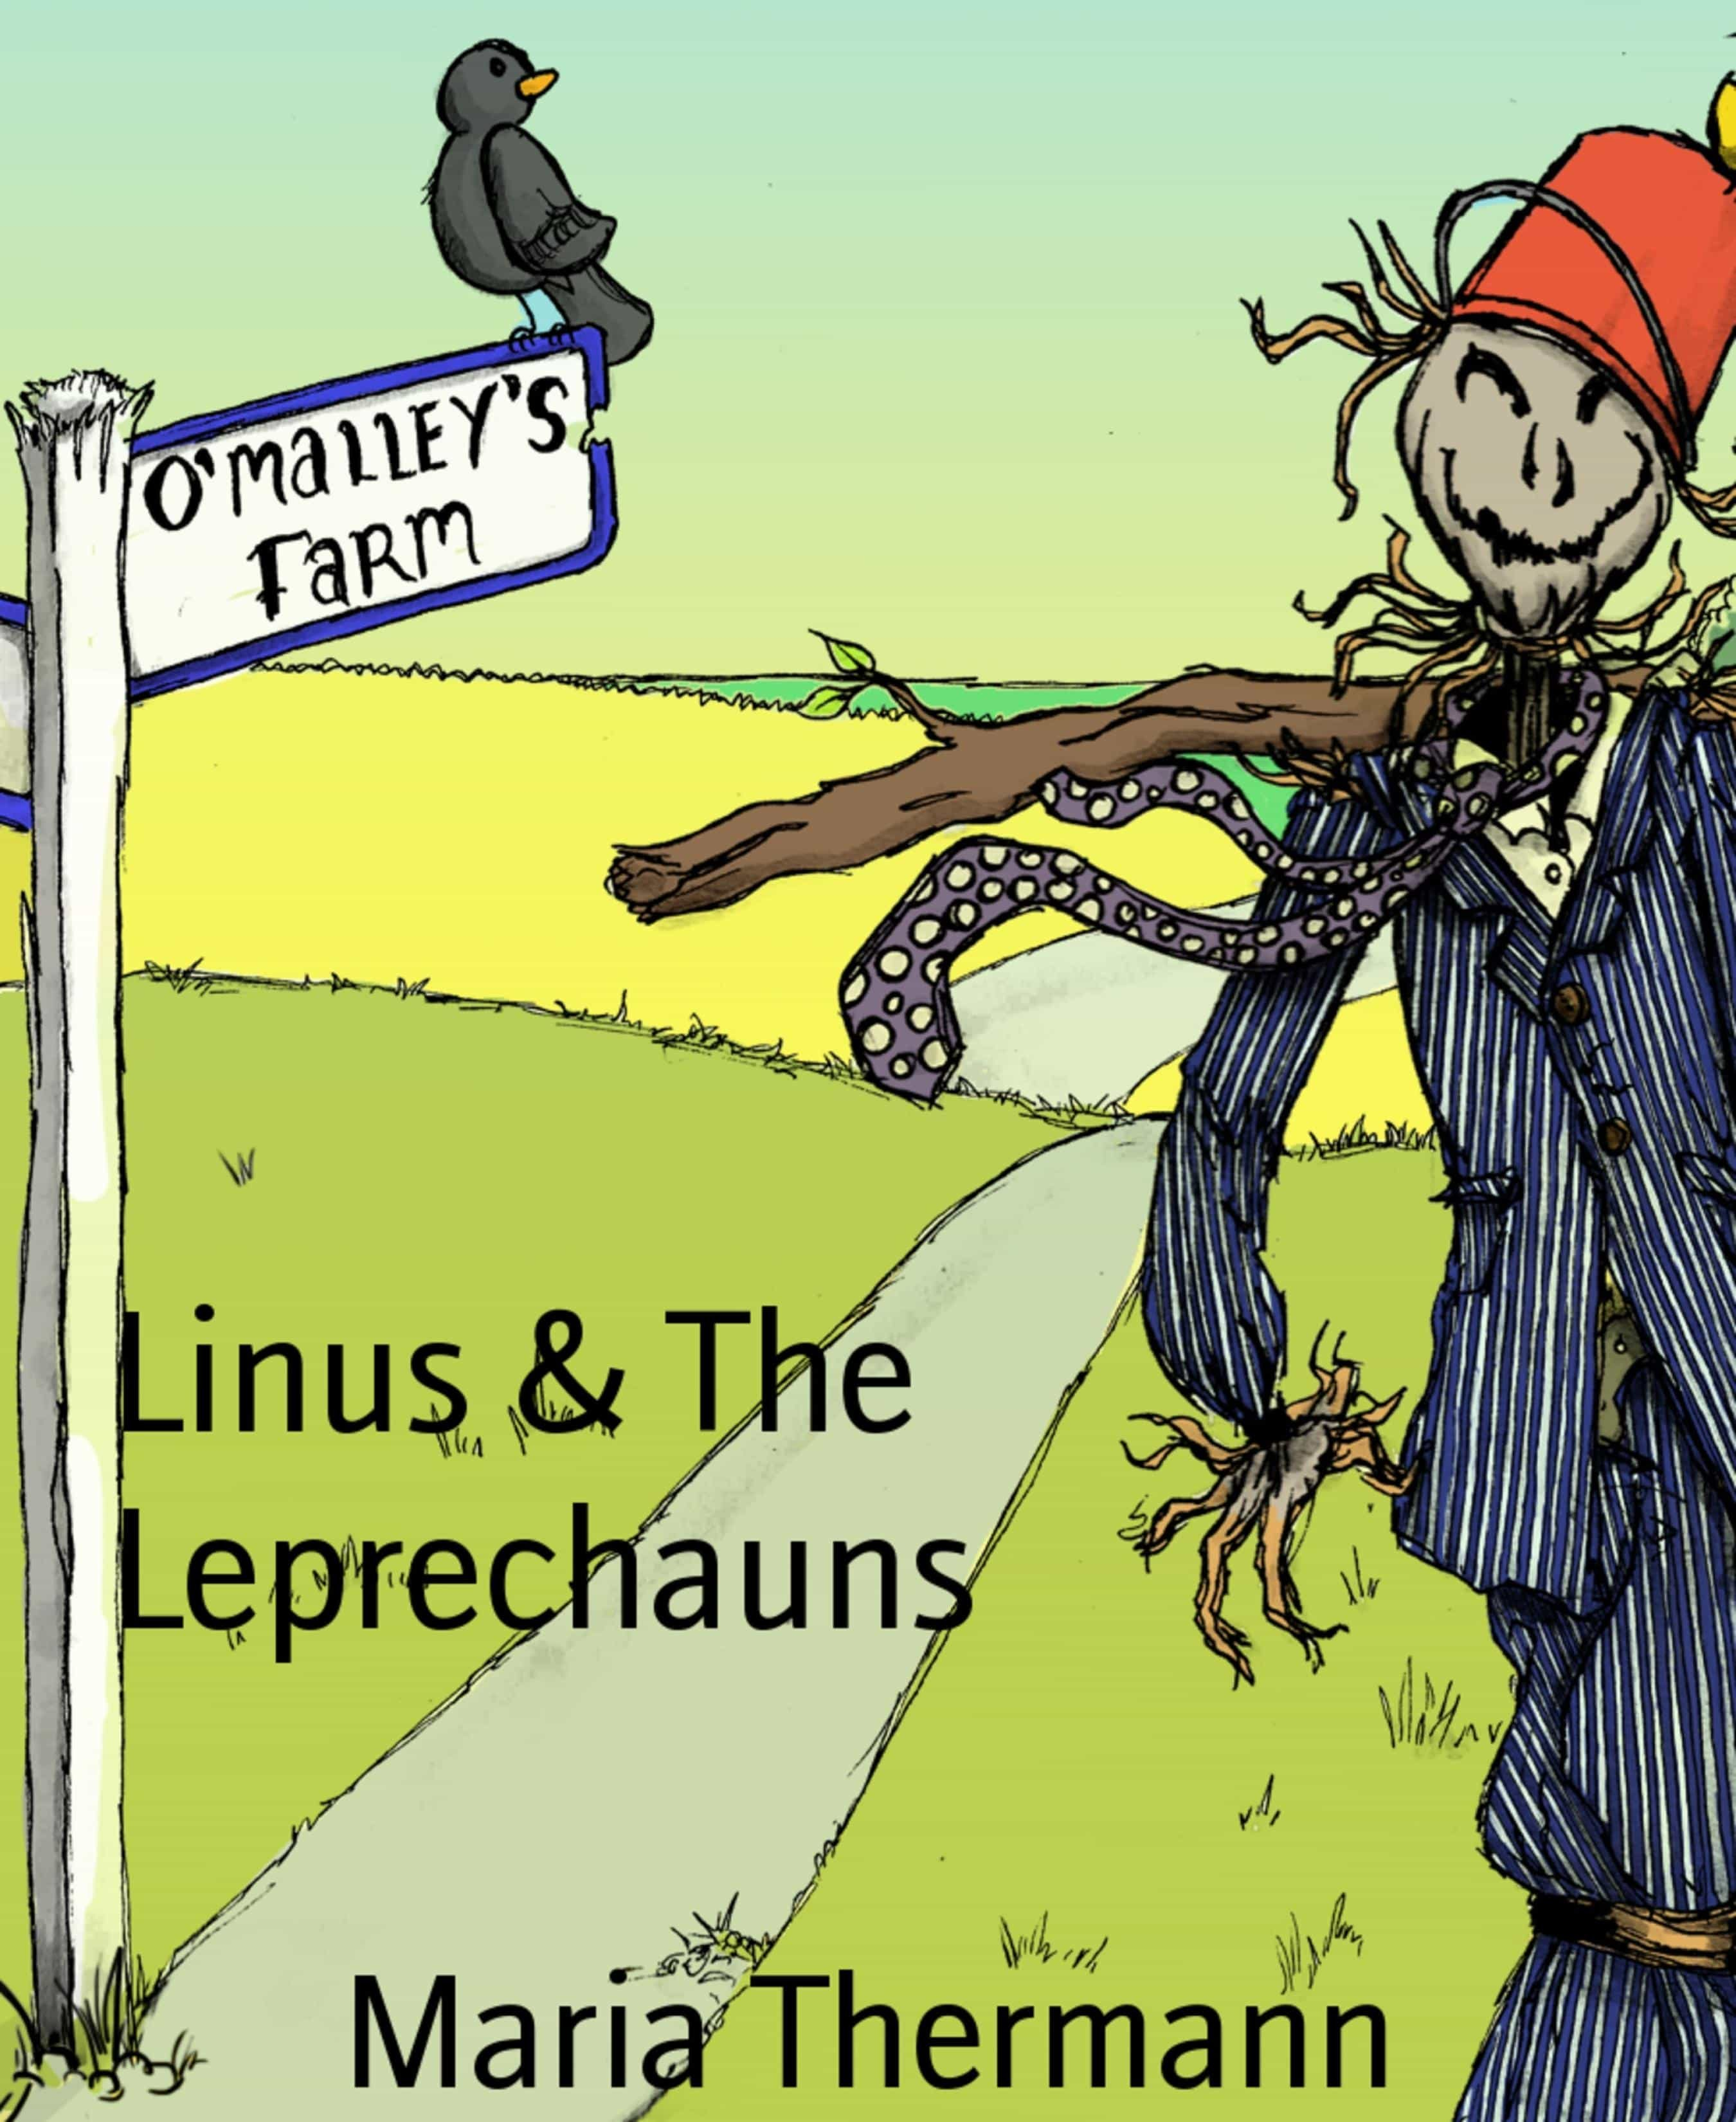 LINUS & THE LEPRECHAUNS